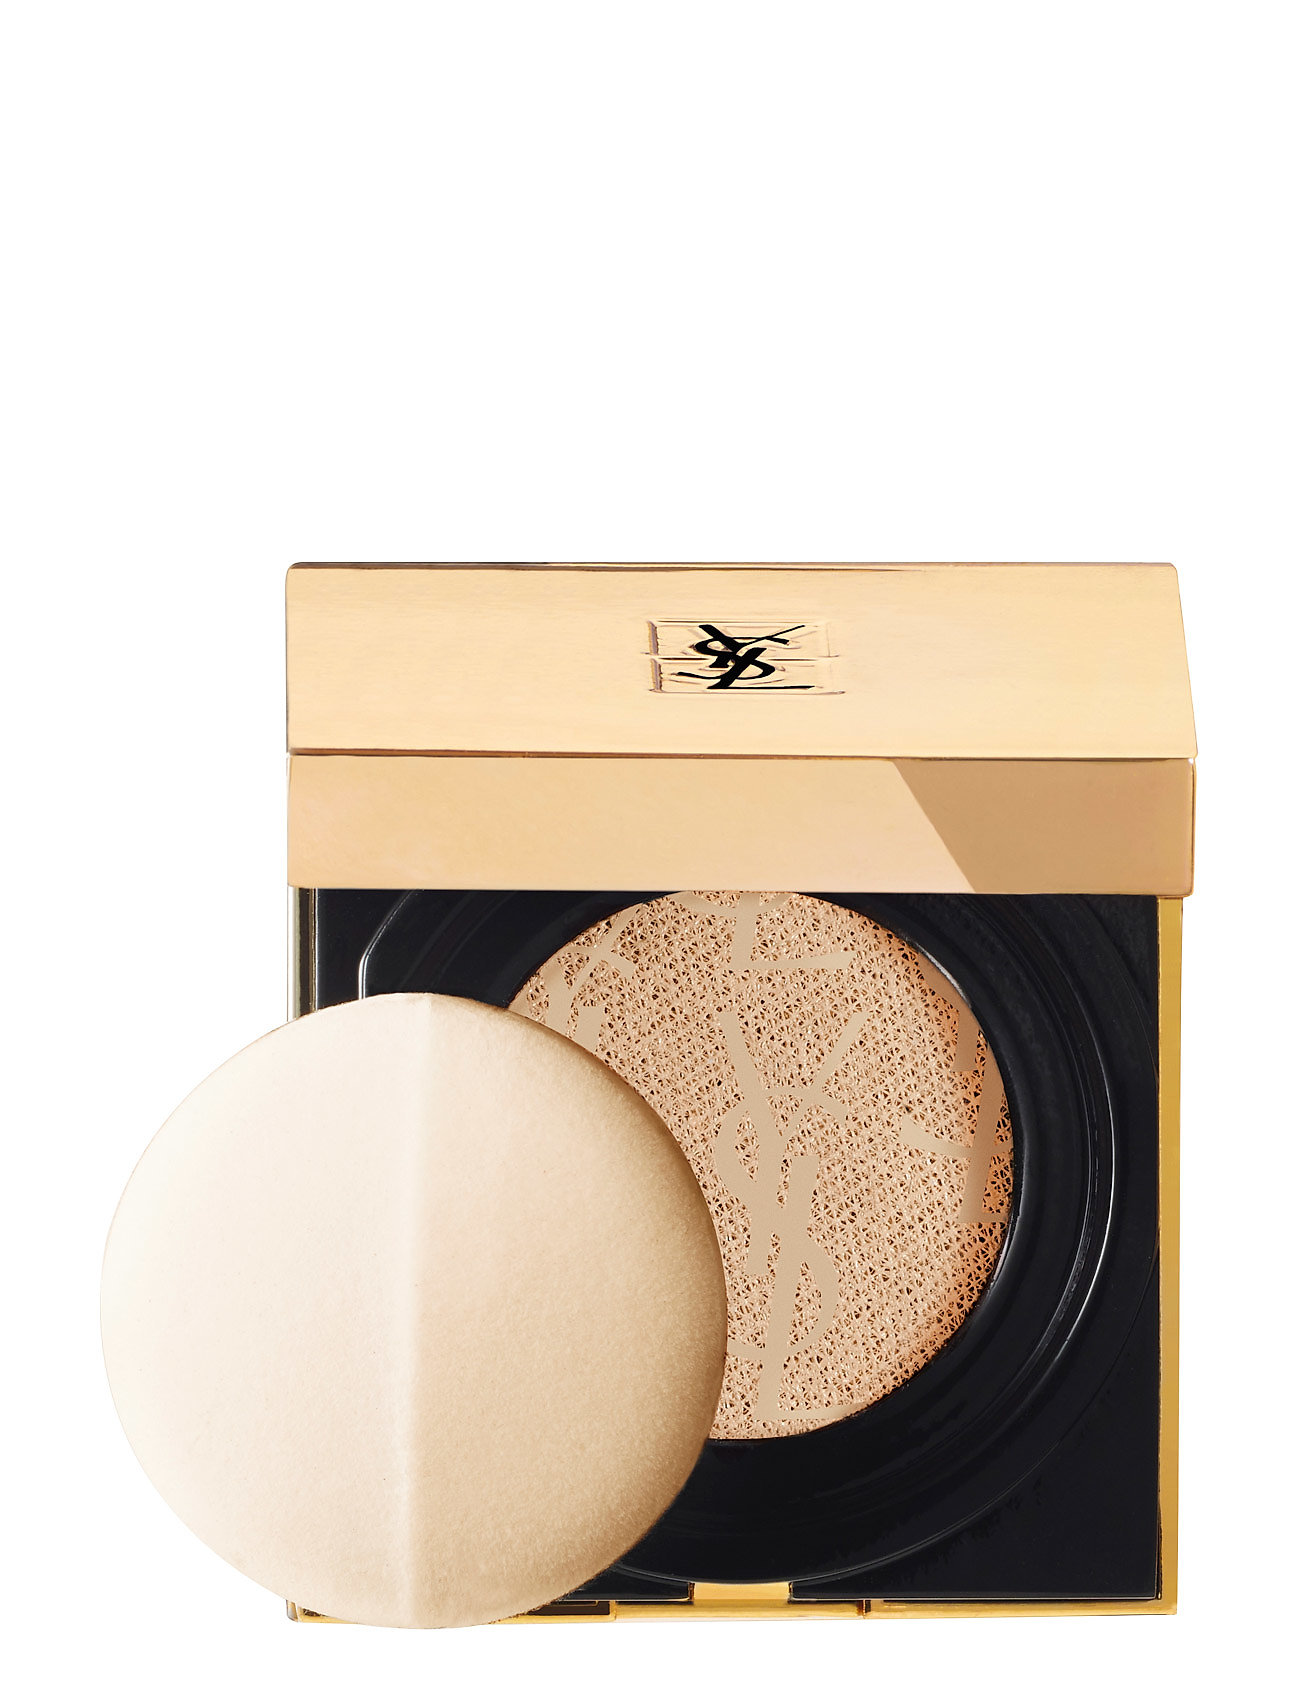 Yves saint laurent touche ã‰clat cushion fra yves saint laurent – summer essentials women (beauty)